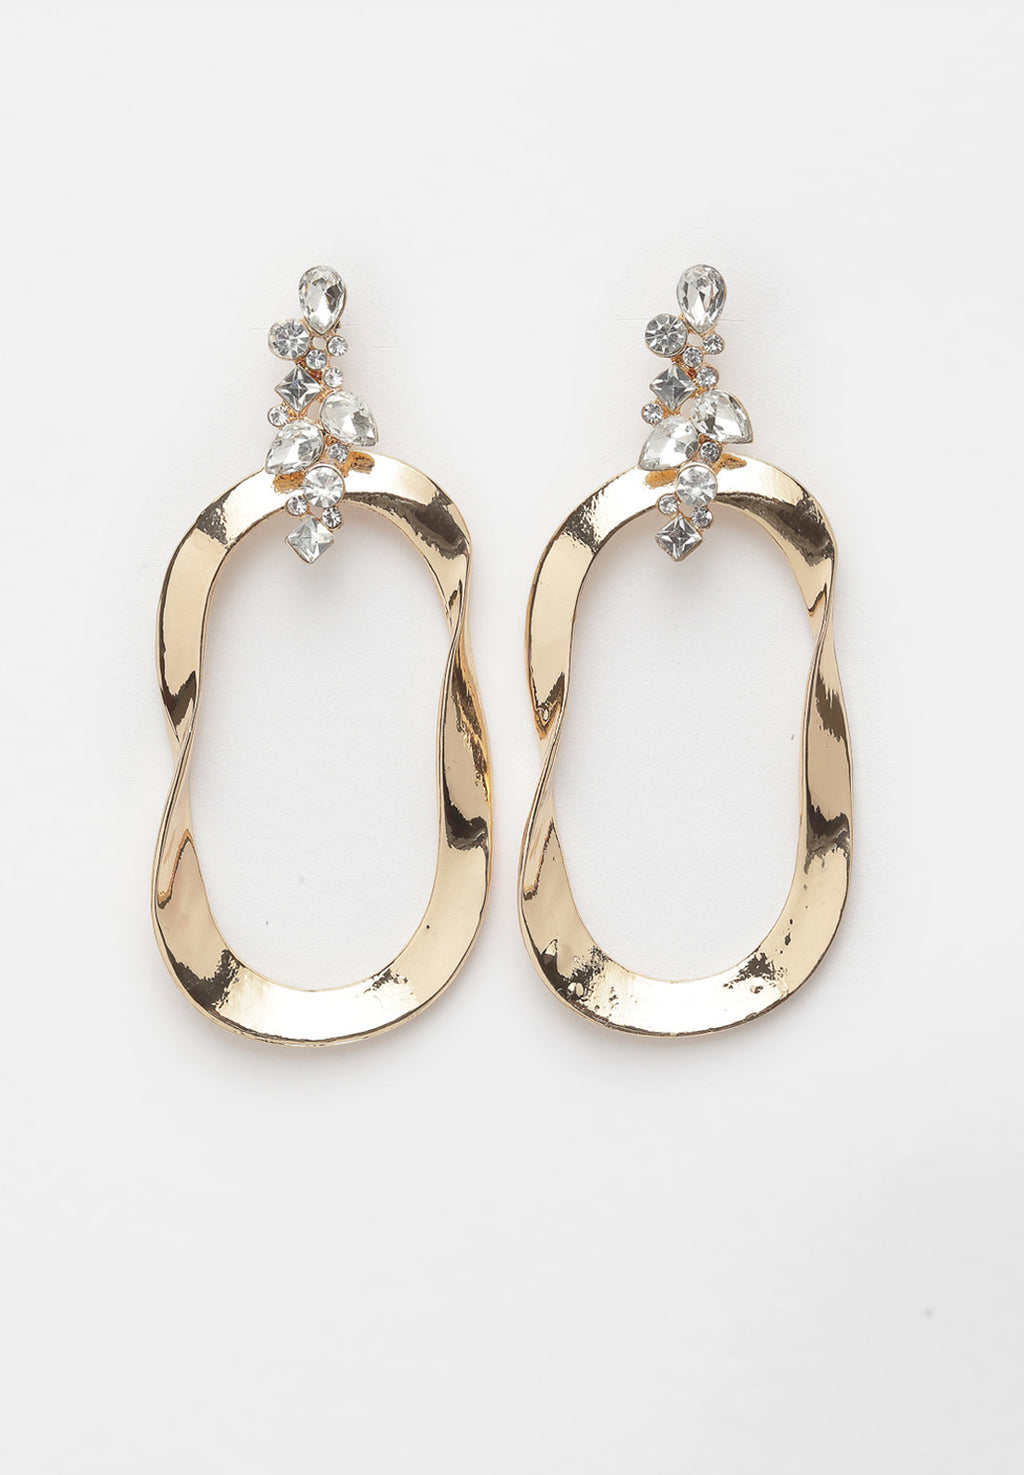 Avant-Garde Paris Metallic Gold Geometric Hoop Earrings